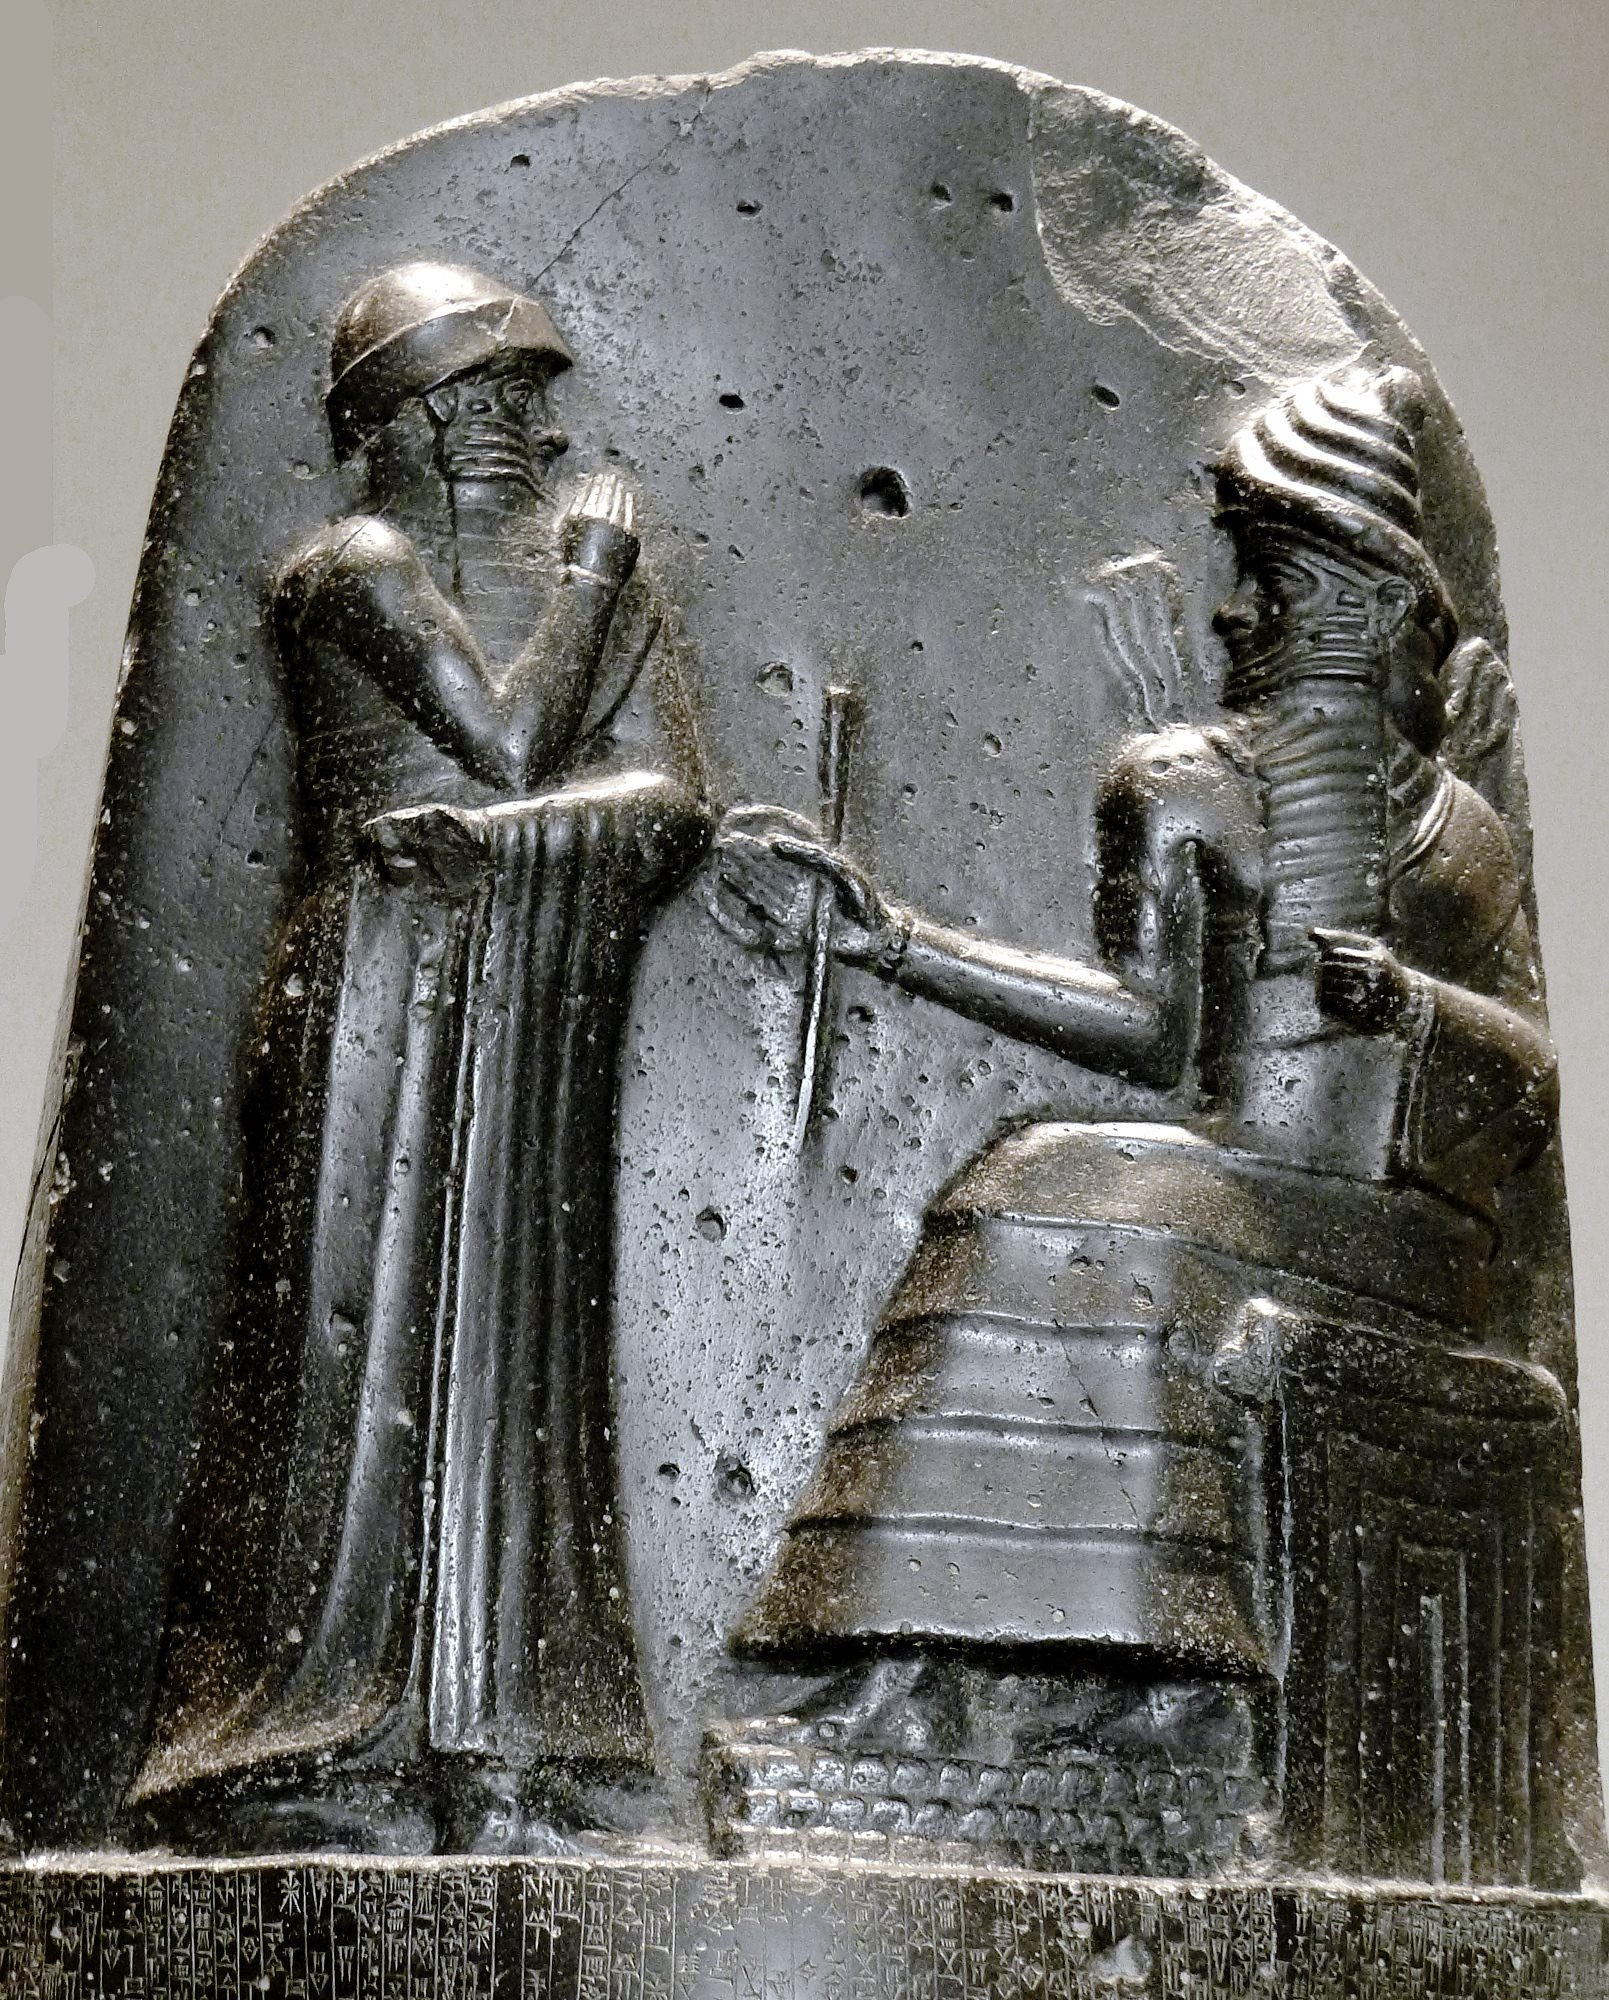 Writing an essay on Hammurabi's Code?